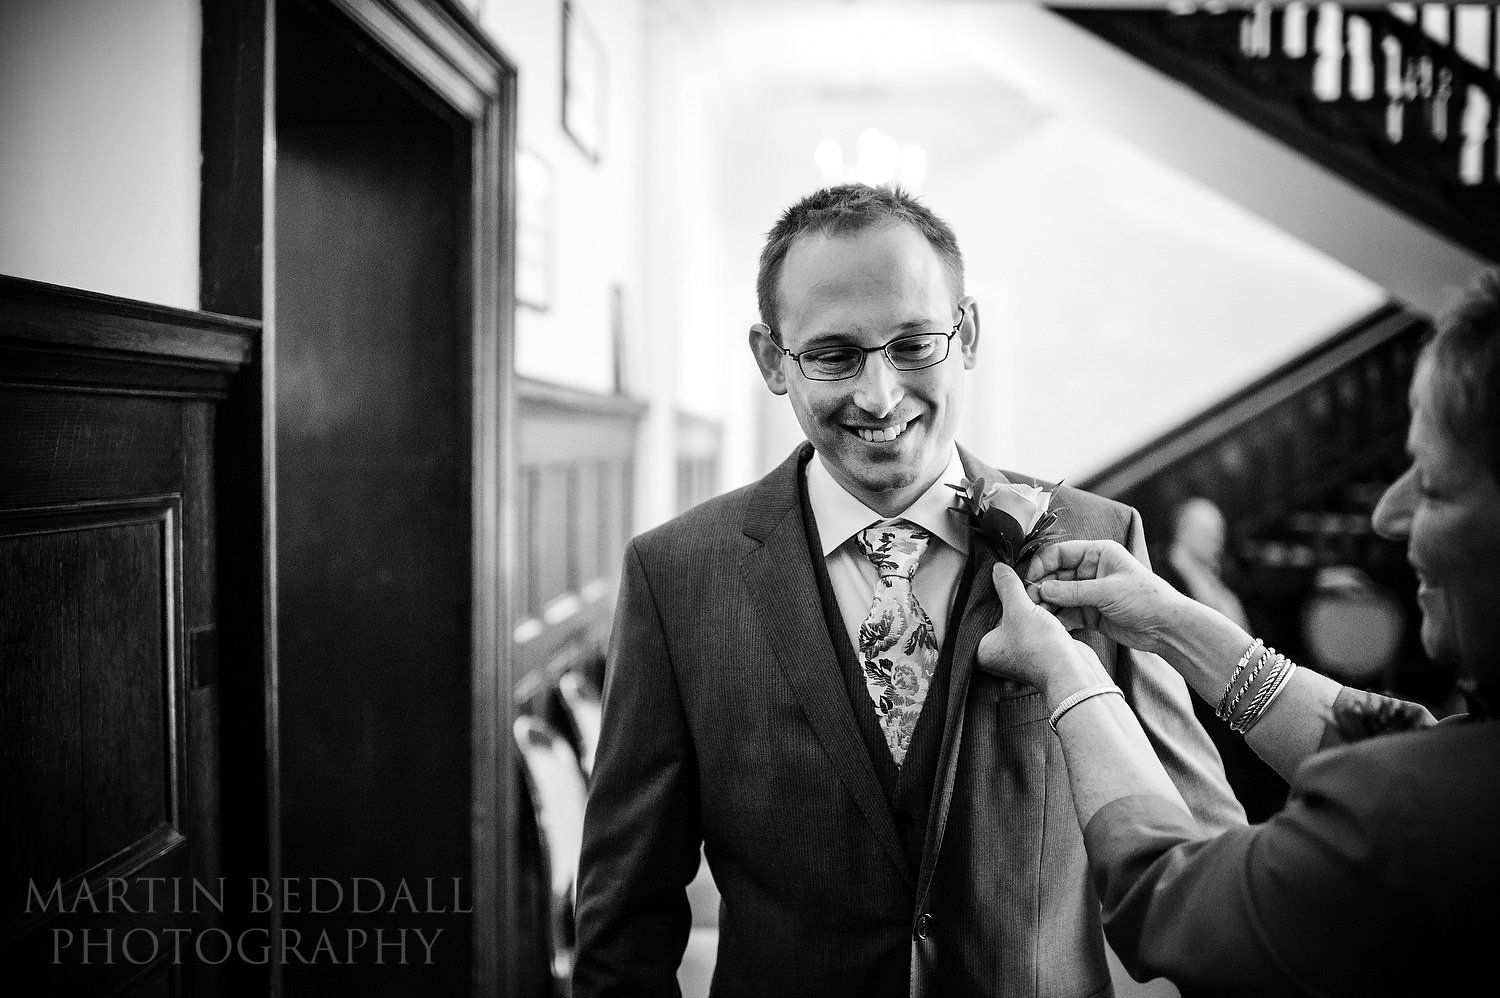 Groom gets his buttonhole at Leatherhead Registry office